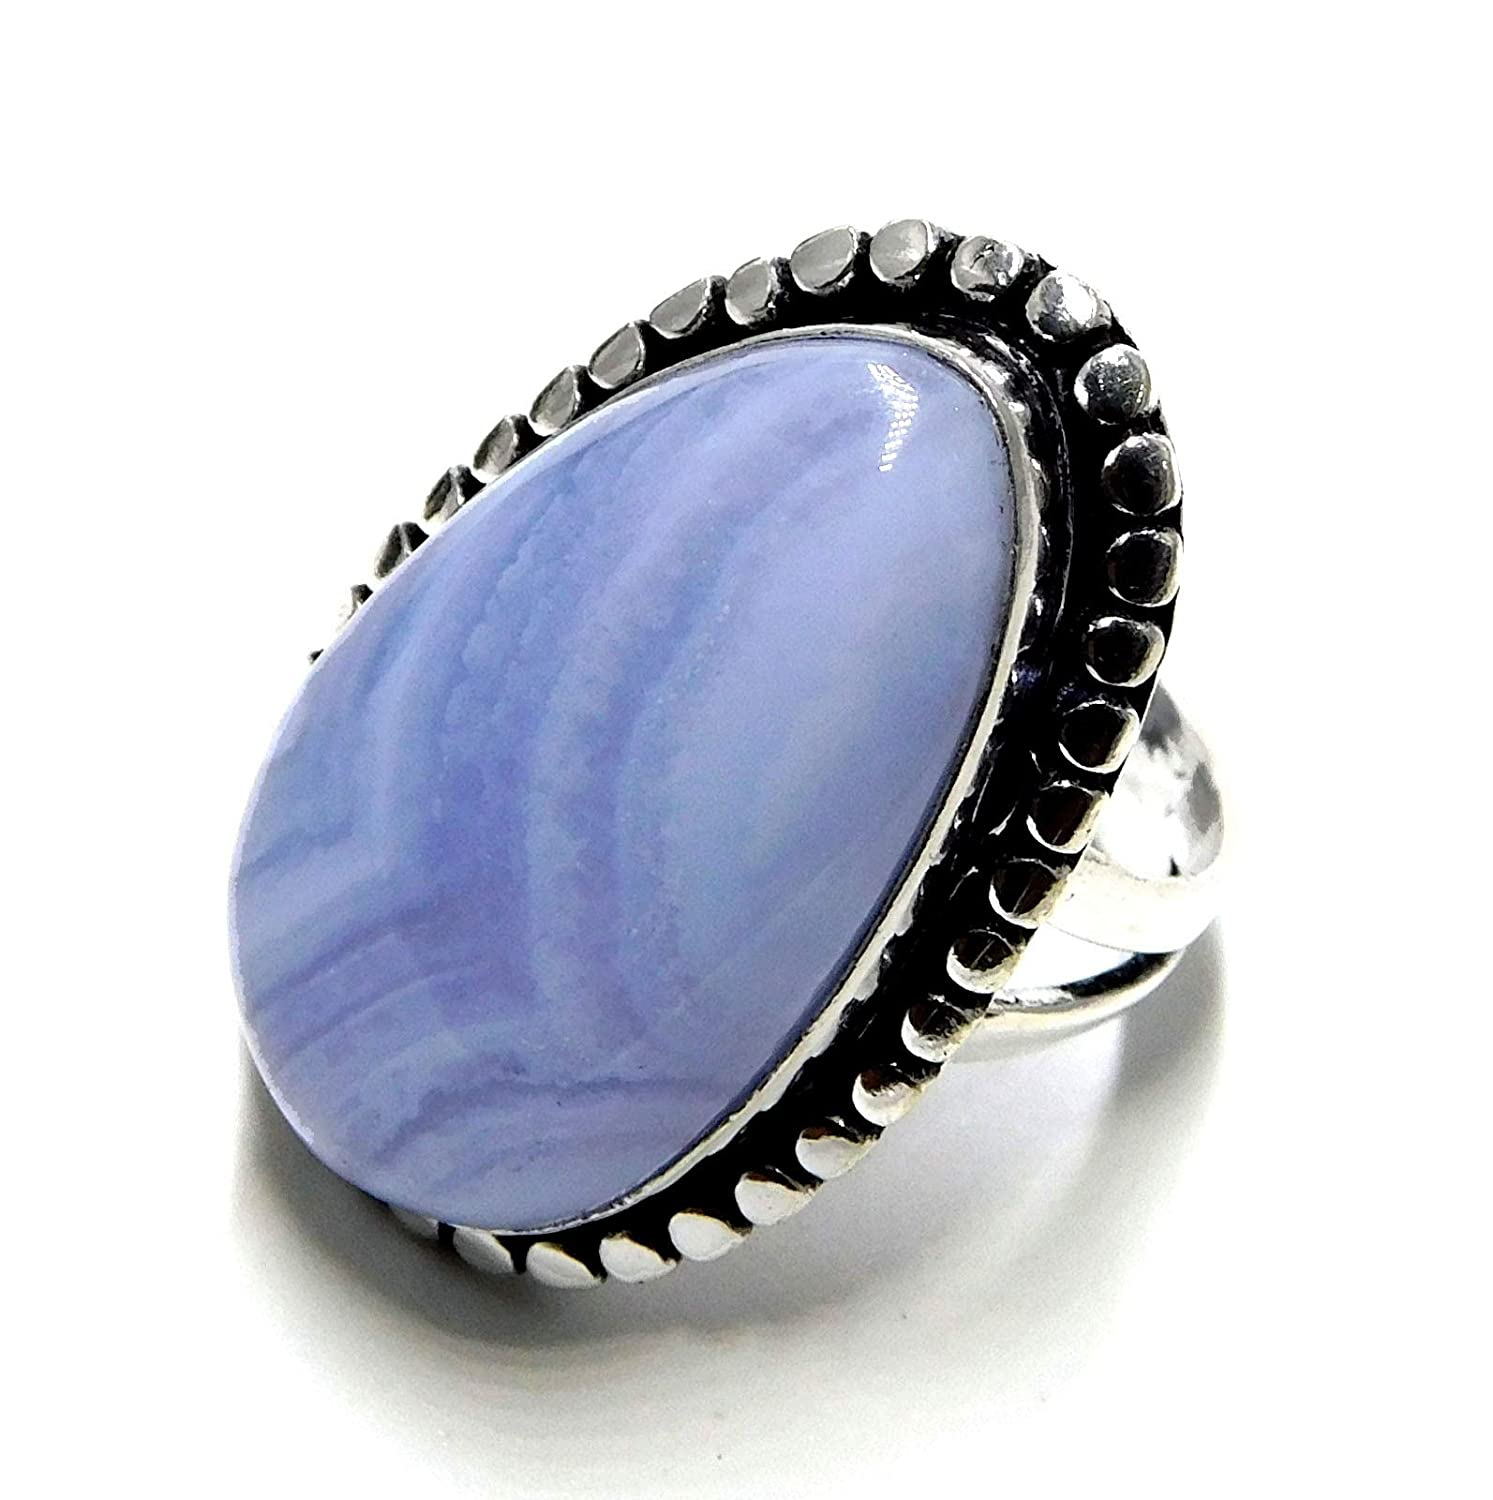 20.15 Carat Blue Lace Agate Jewelry 925 Sterling Silver Plated Ring US Size 7